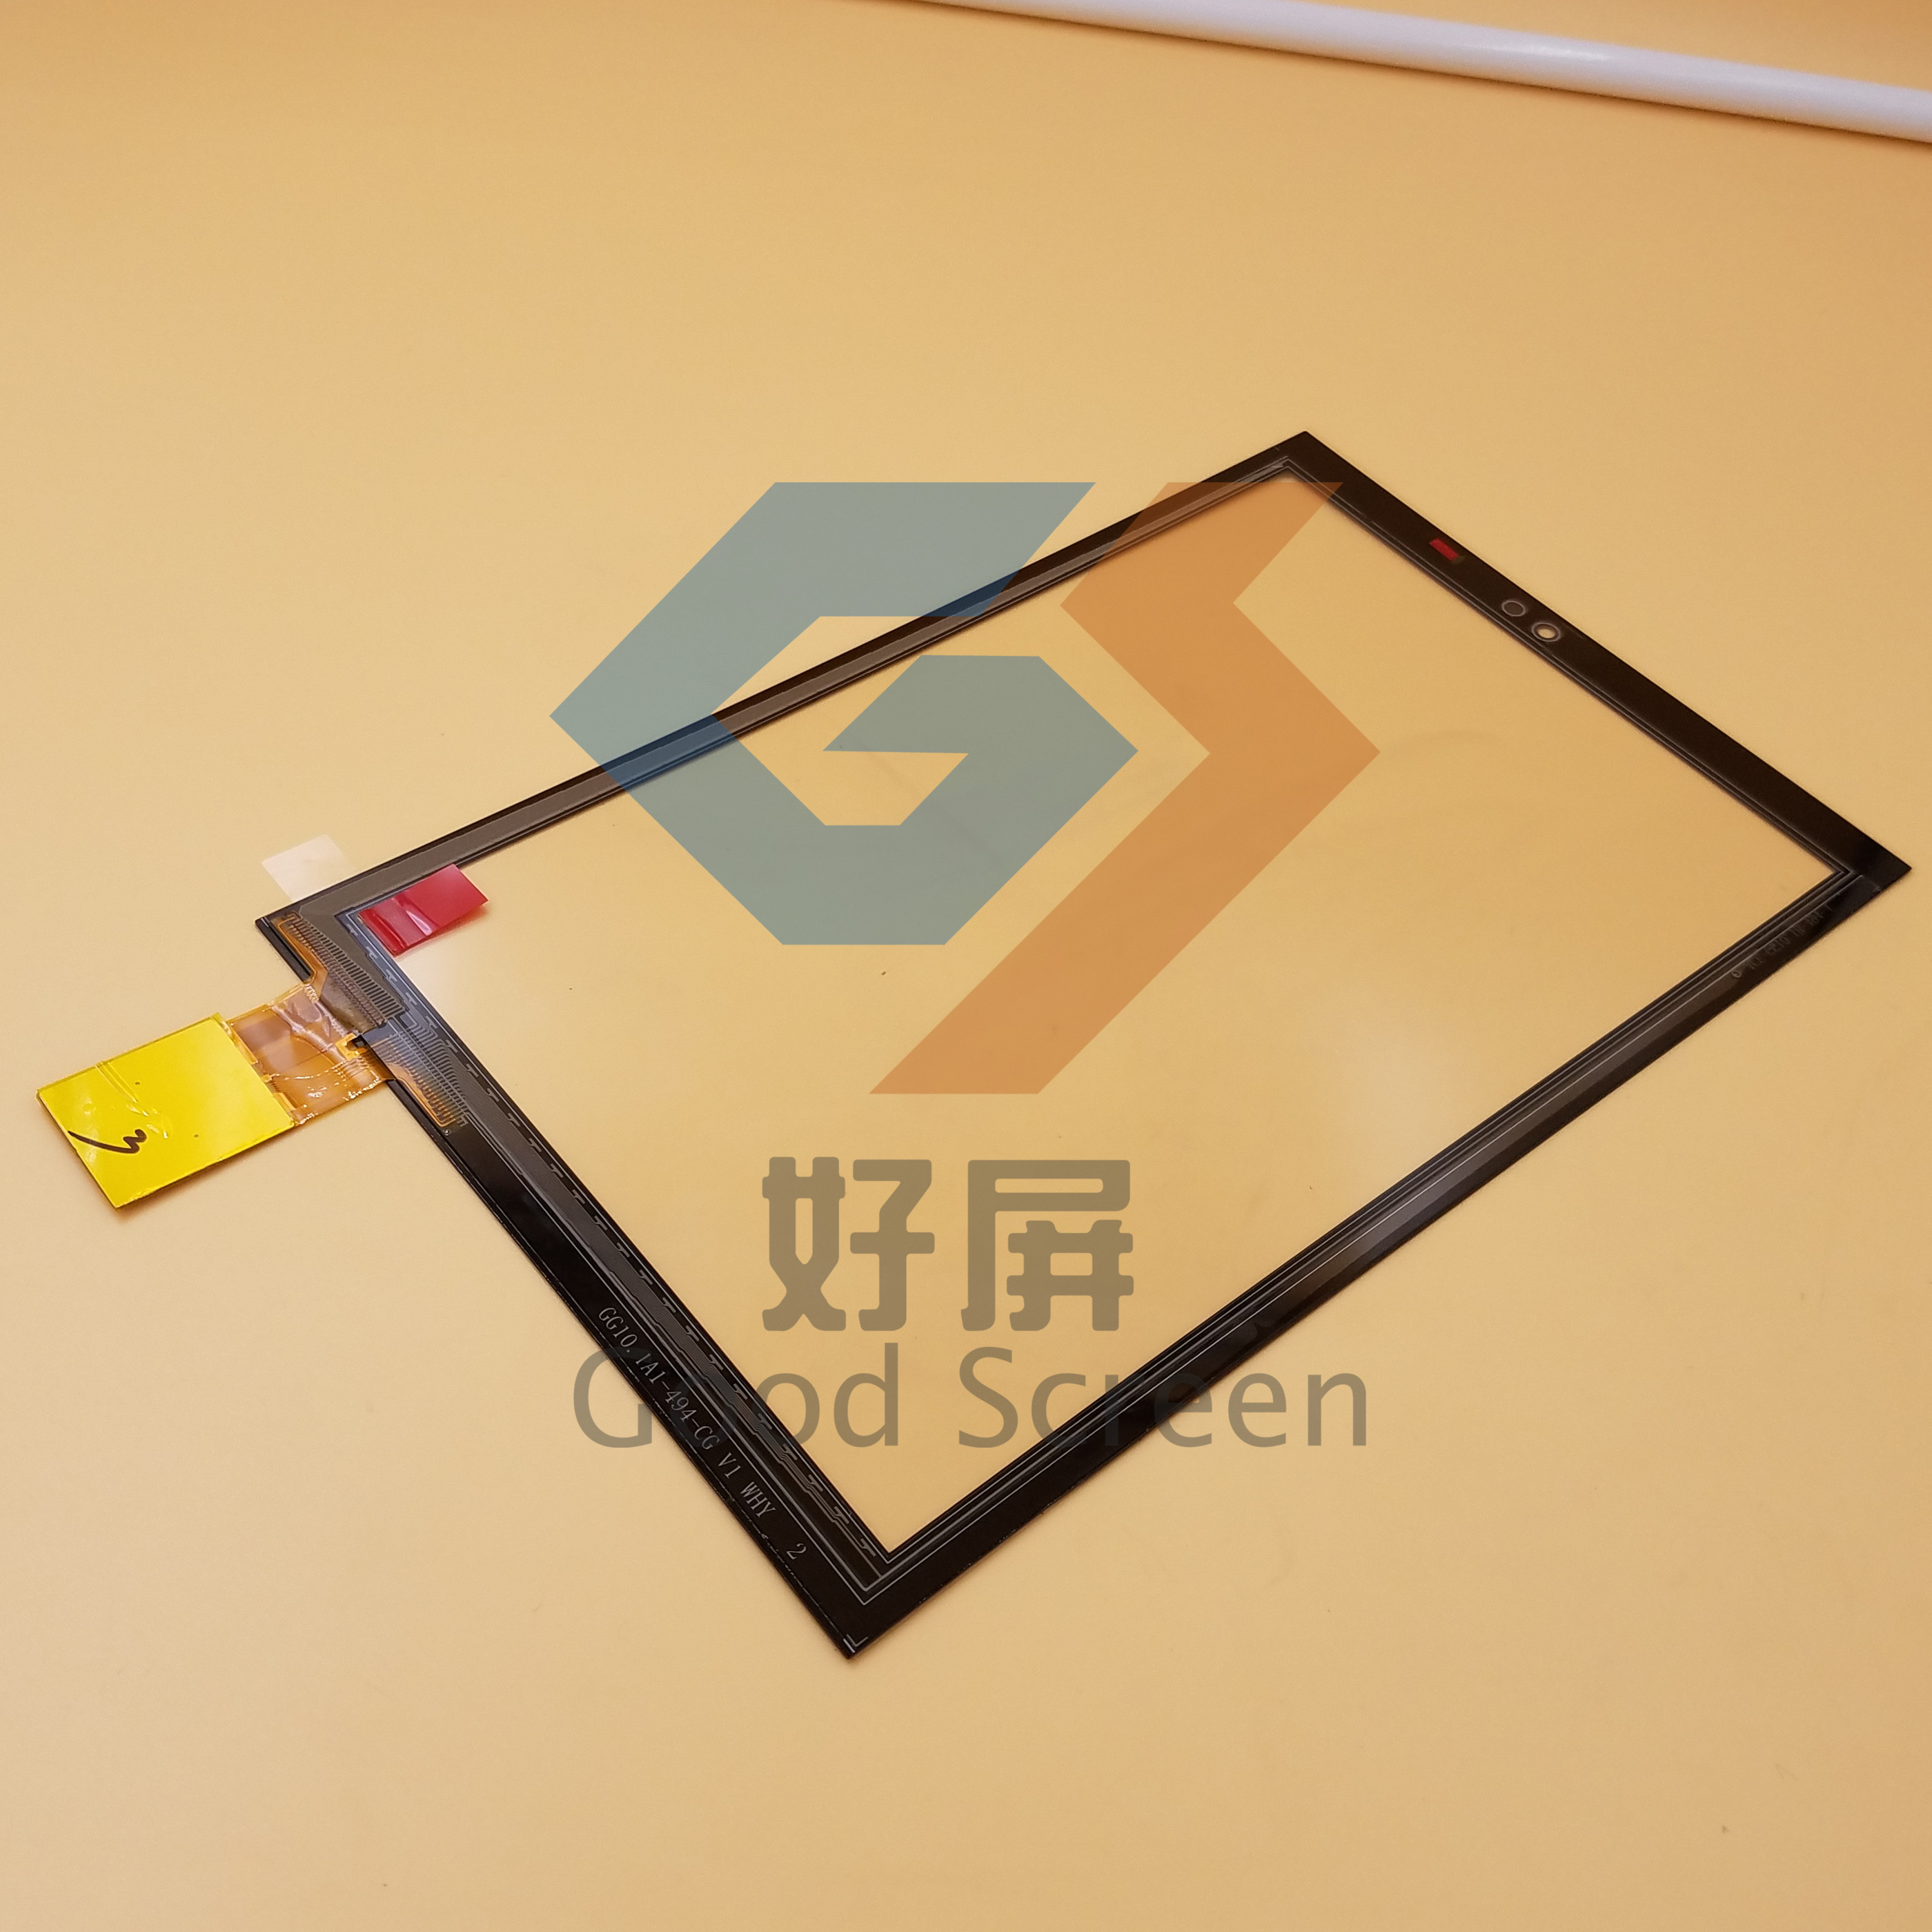 10.1inch for FCC0494-4615 GG10.1A1-494-CG tablet pc capacitive touch screen panel digitizer glass sensor FCC0494 new 7 inch tablet pc mglctp 701271 authentic touch screen handwriting screen multi point capacitive screen external screen